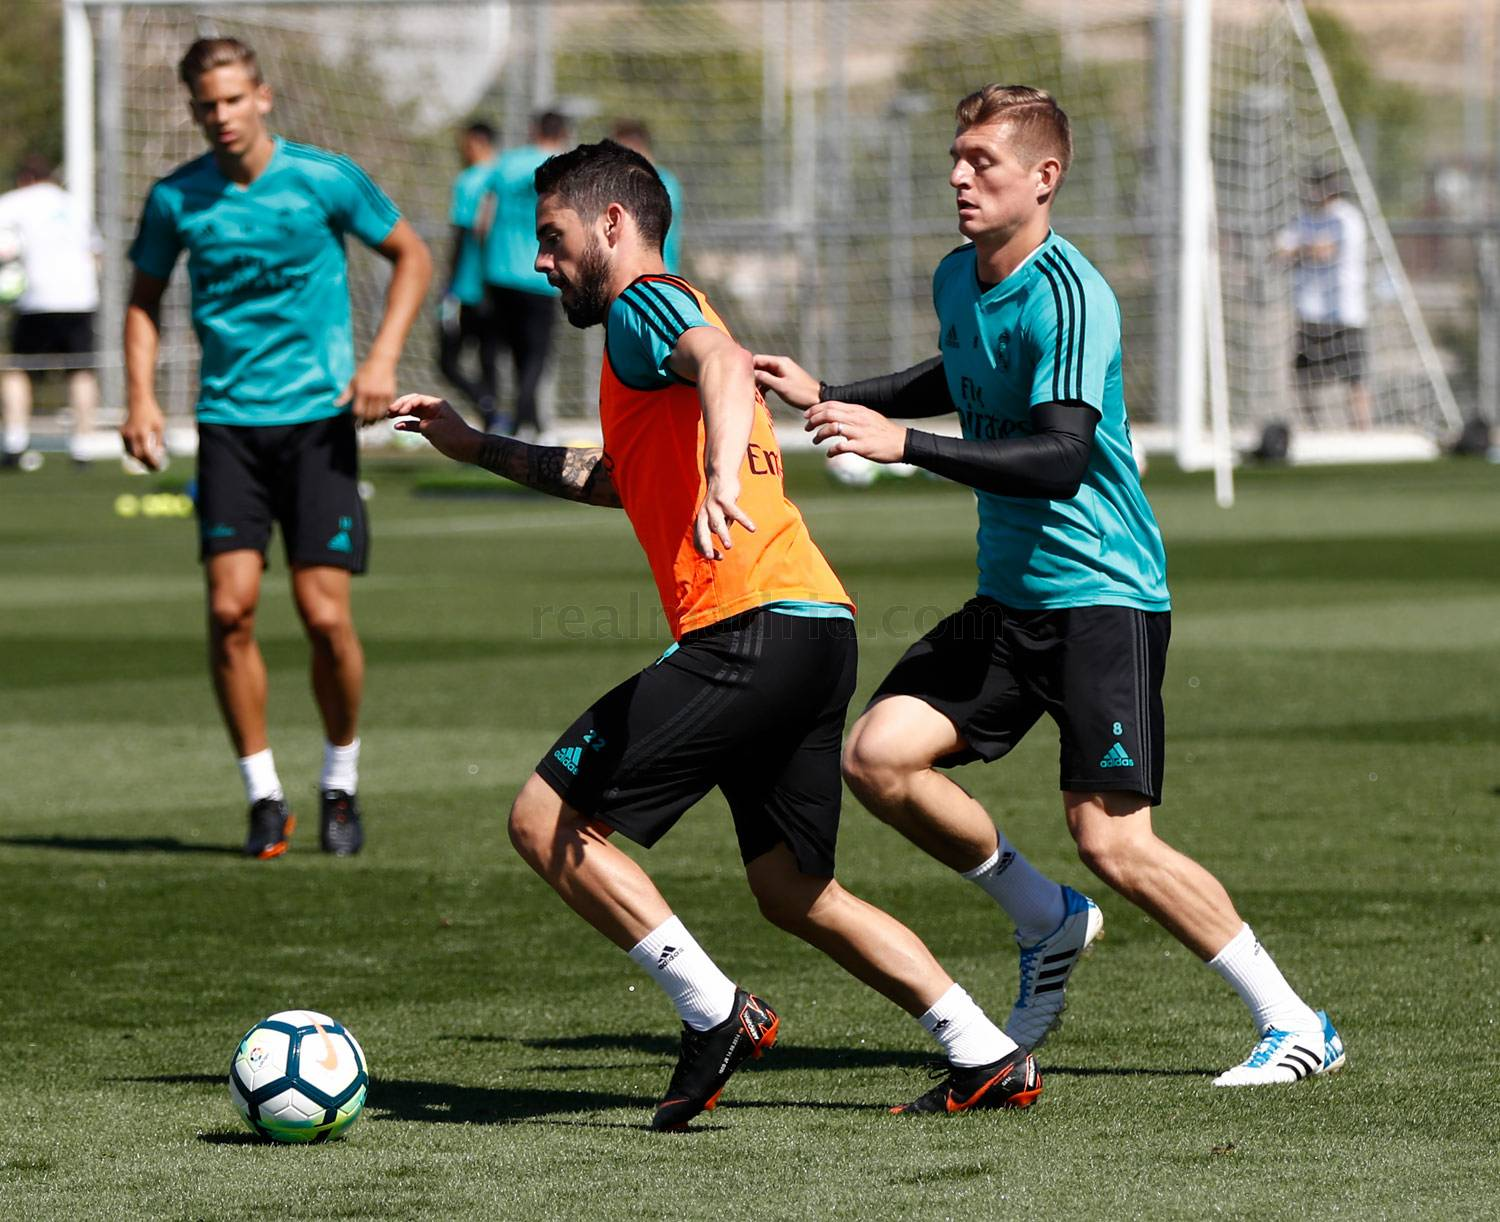 Real Madrid - Entrenamiento del Real Madrid - 16-05-2018